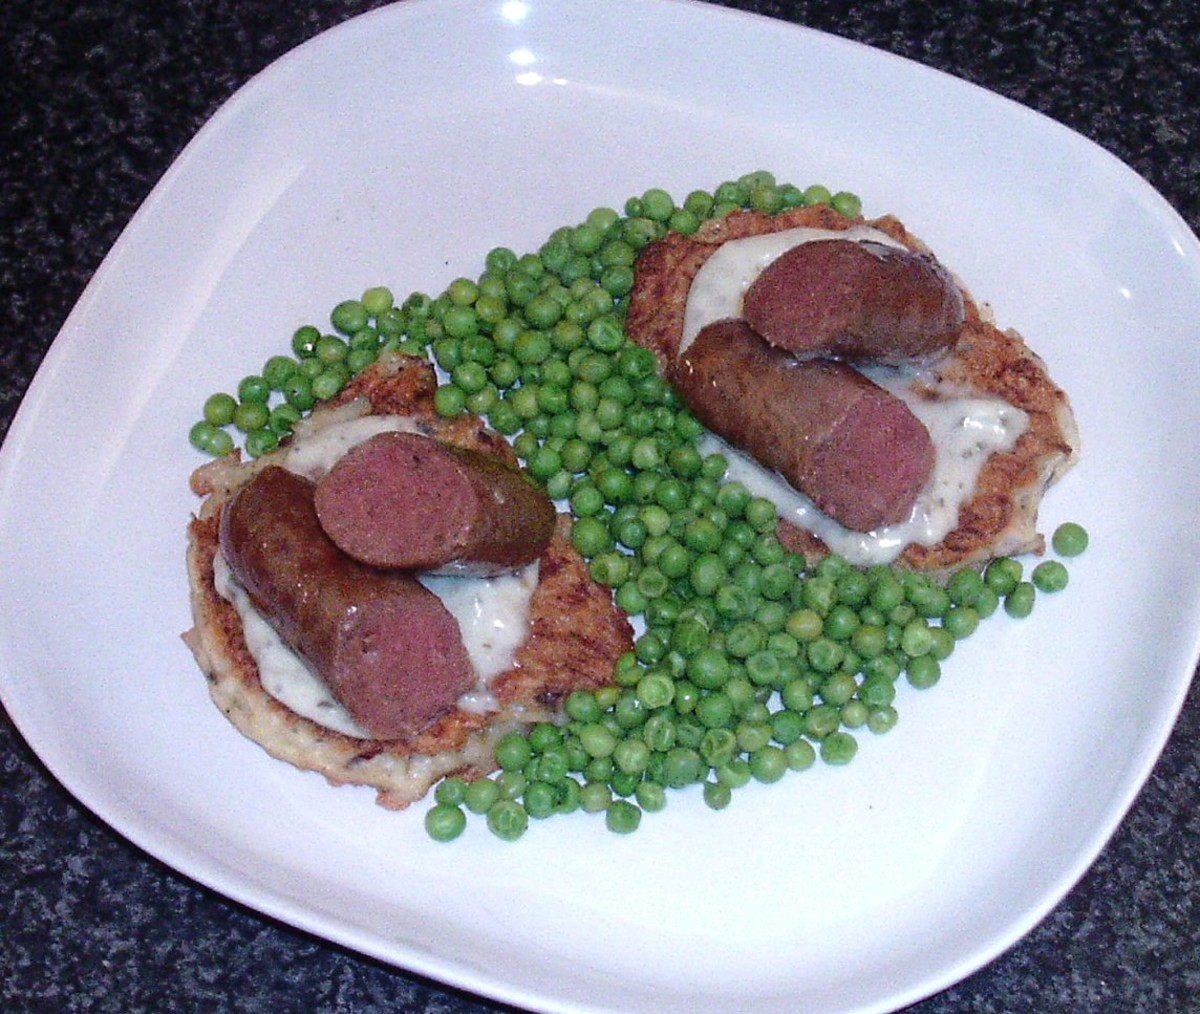 Venison sausages are served on potato cakes spread with horseradish sauce